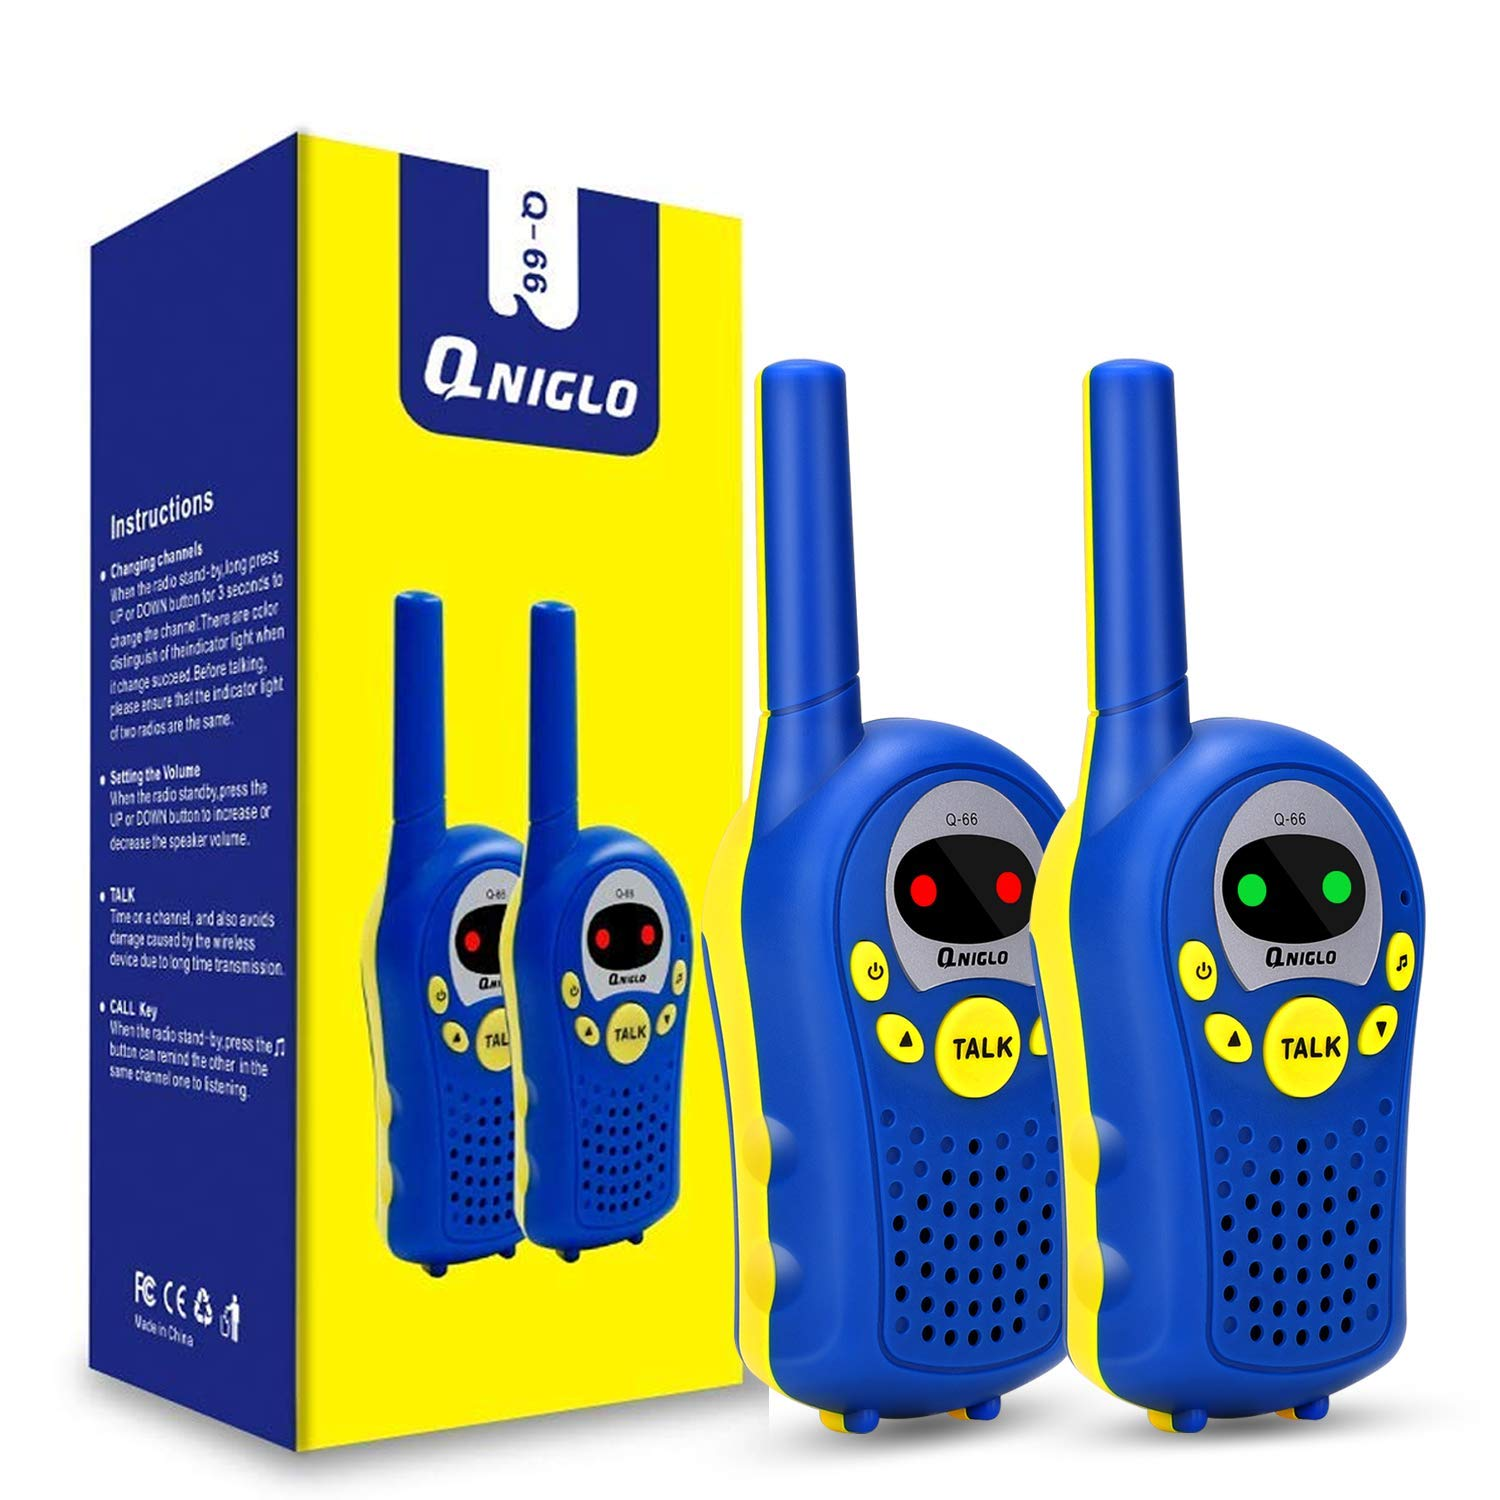 ENGPOW Walkie Talkies for Kids, Toys Gifts for 3-12 Years Old Boys Girls,Easy to Use Mini Walkie Talkies with Long Range 3 Channels